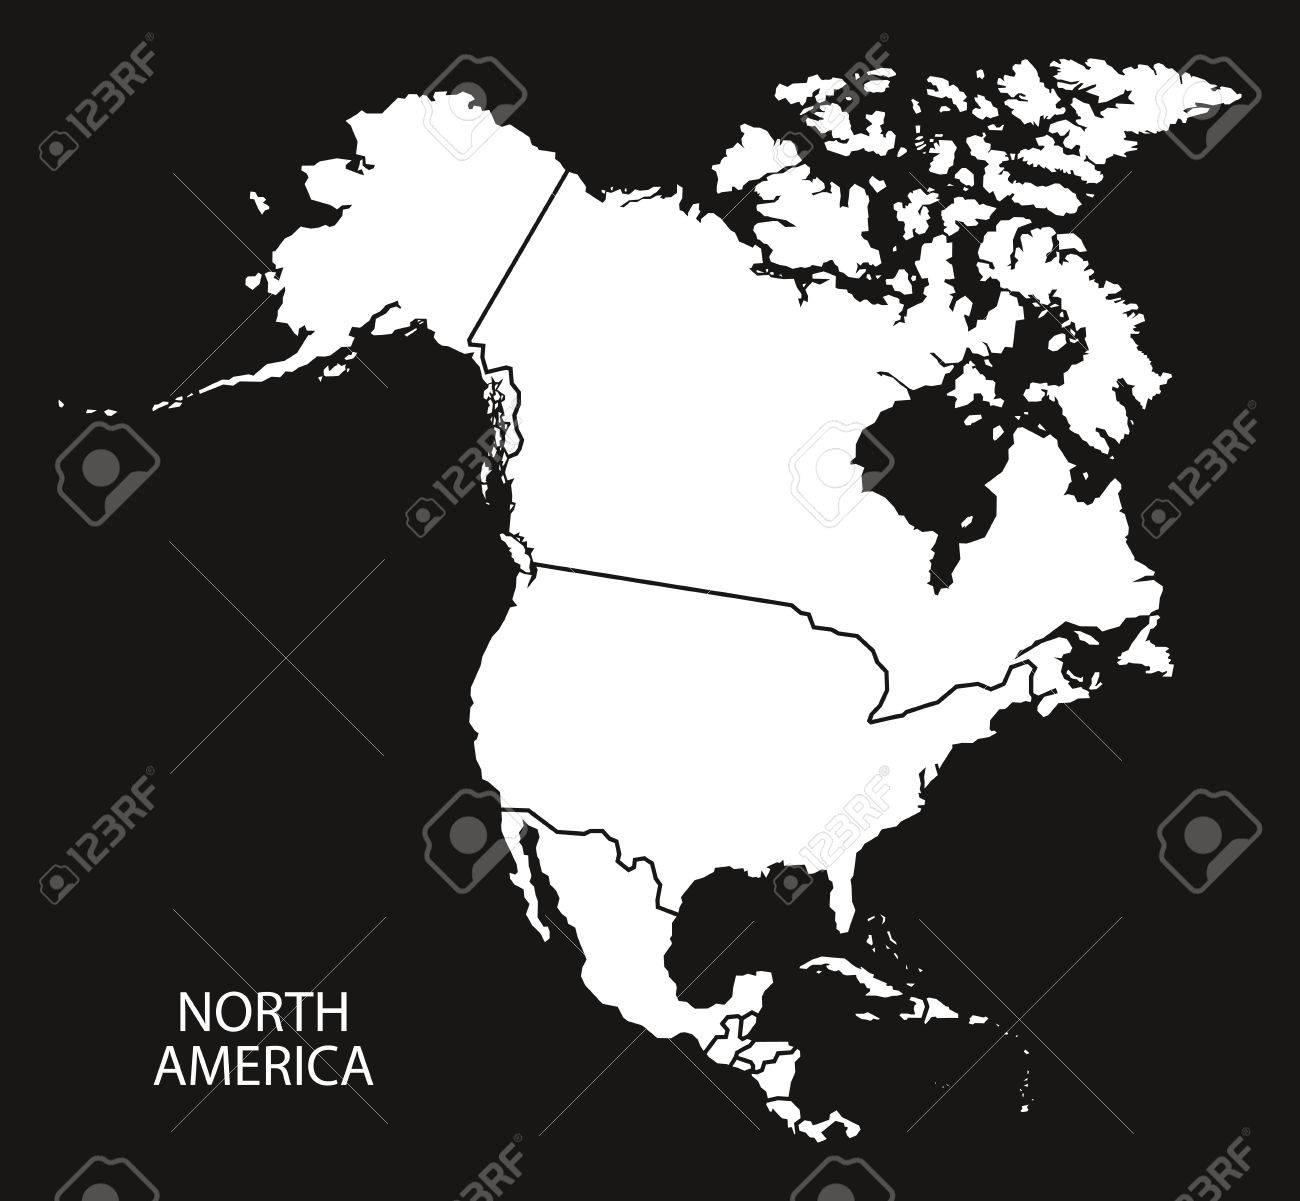 North America With Countries Map Black And White Illustration